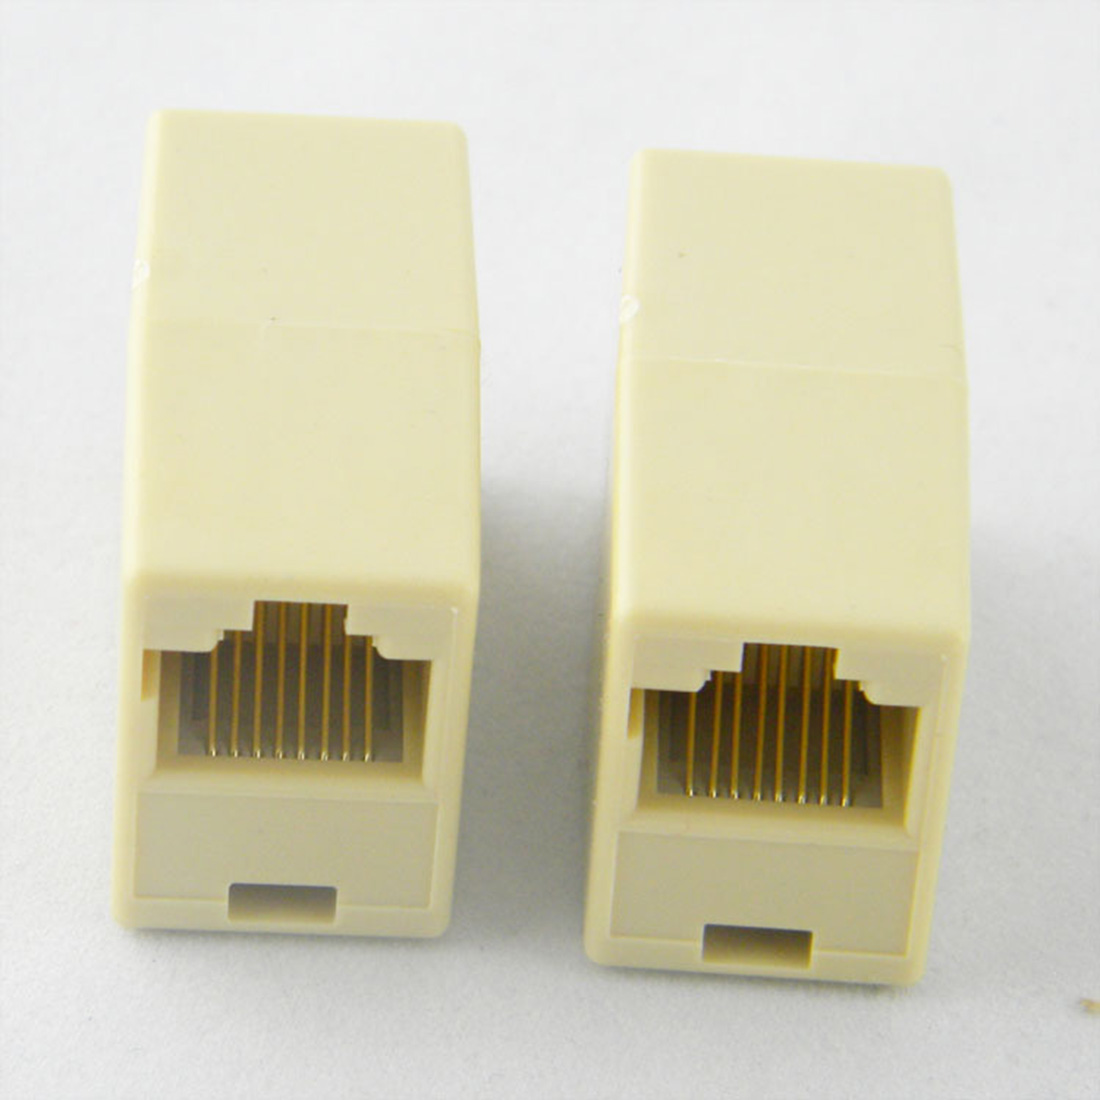 Hot Selling Portable Cable Joiner RJ45 Adapter Network Ethernet Lan Coupler Connector Extender Plug lan ethernet network rj45 1 male to 3 female connector splitter adapter cable h029